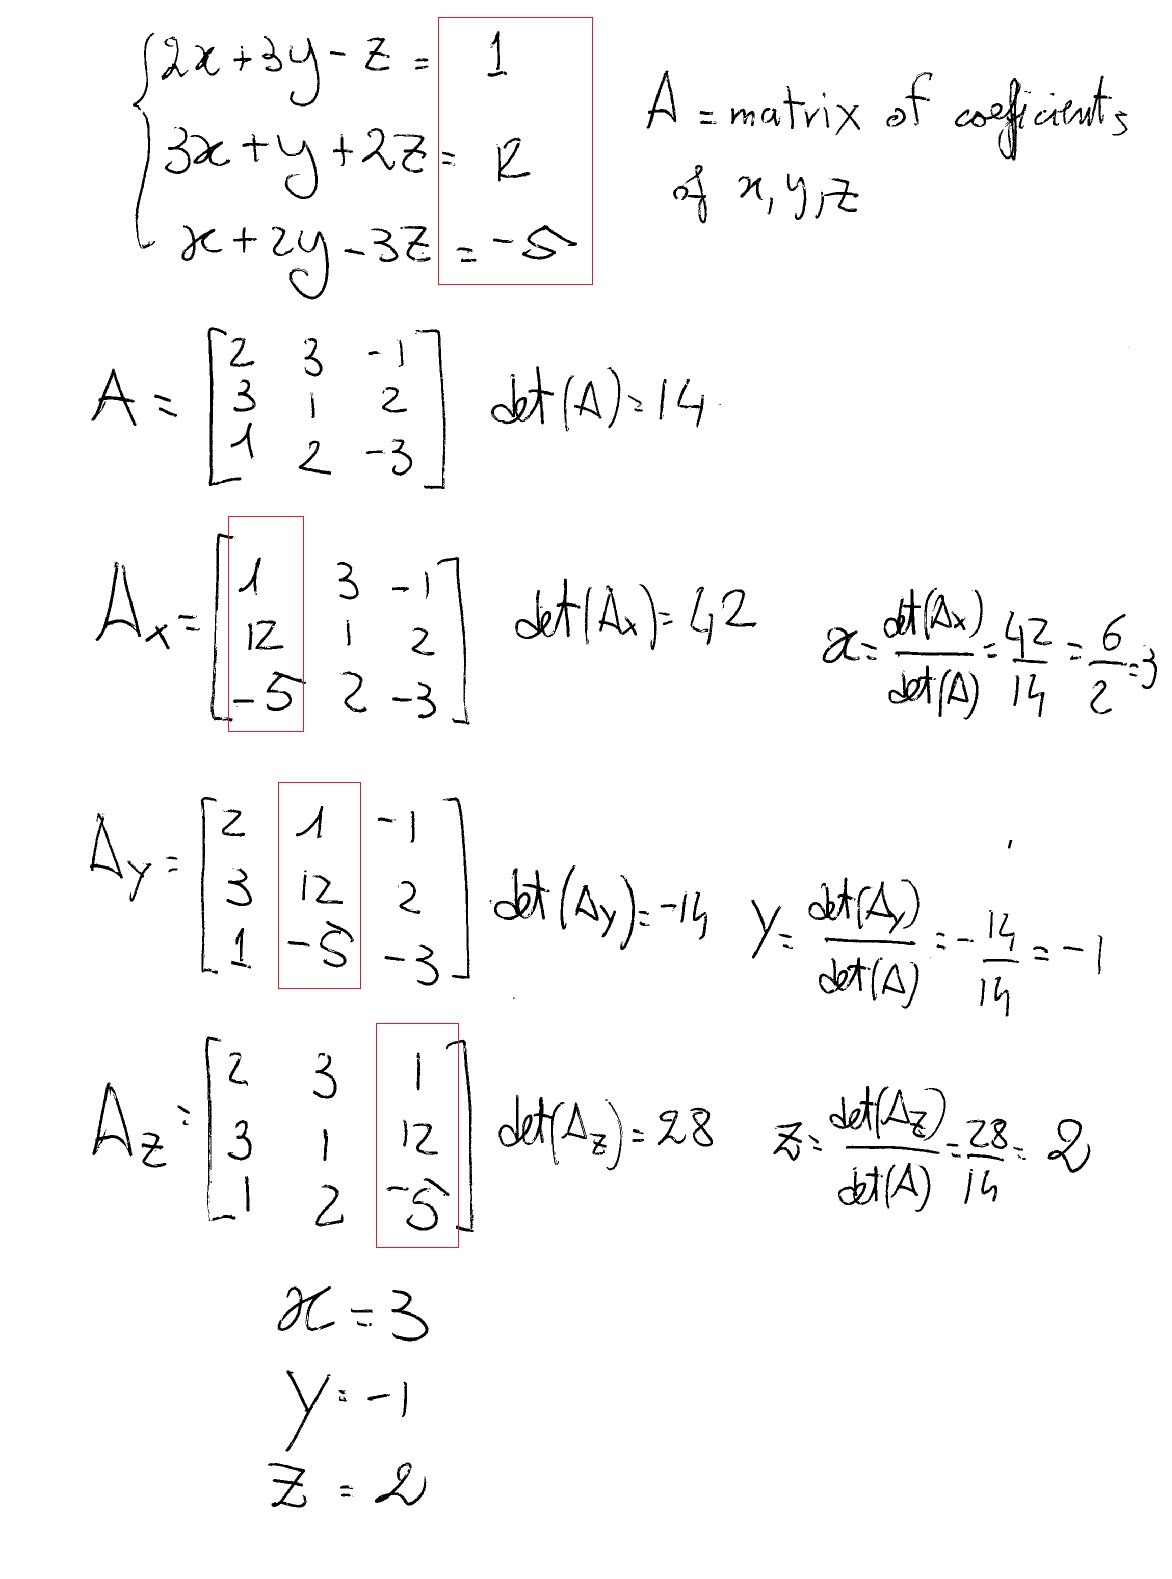 How Do You Solve 2x + 3y - Z = 1, 3x + y + 2z = 12, And x